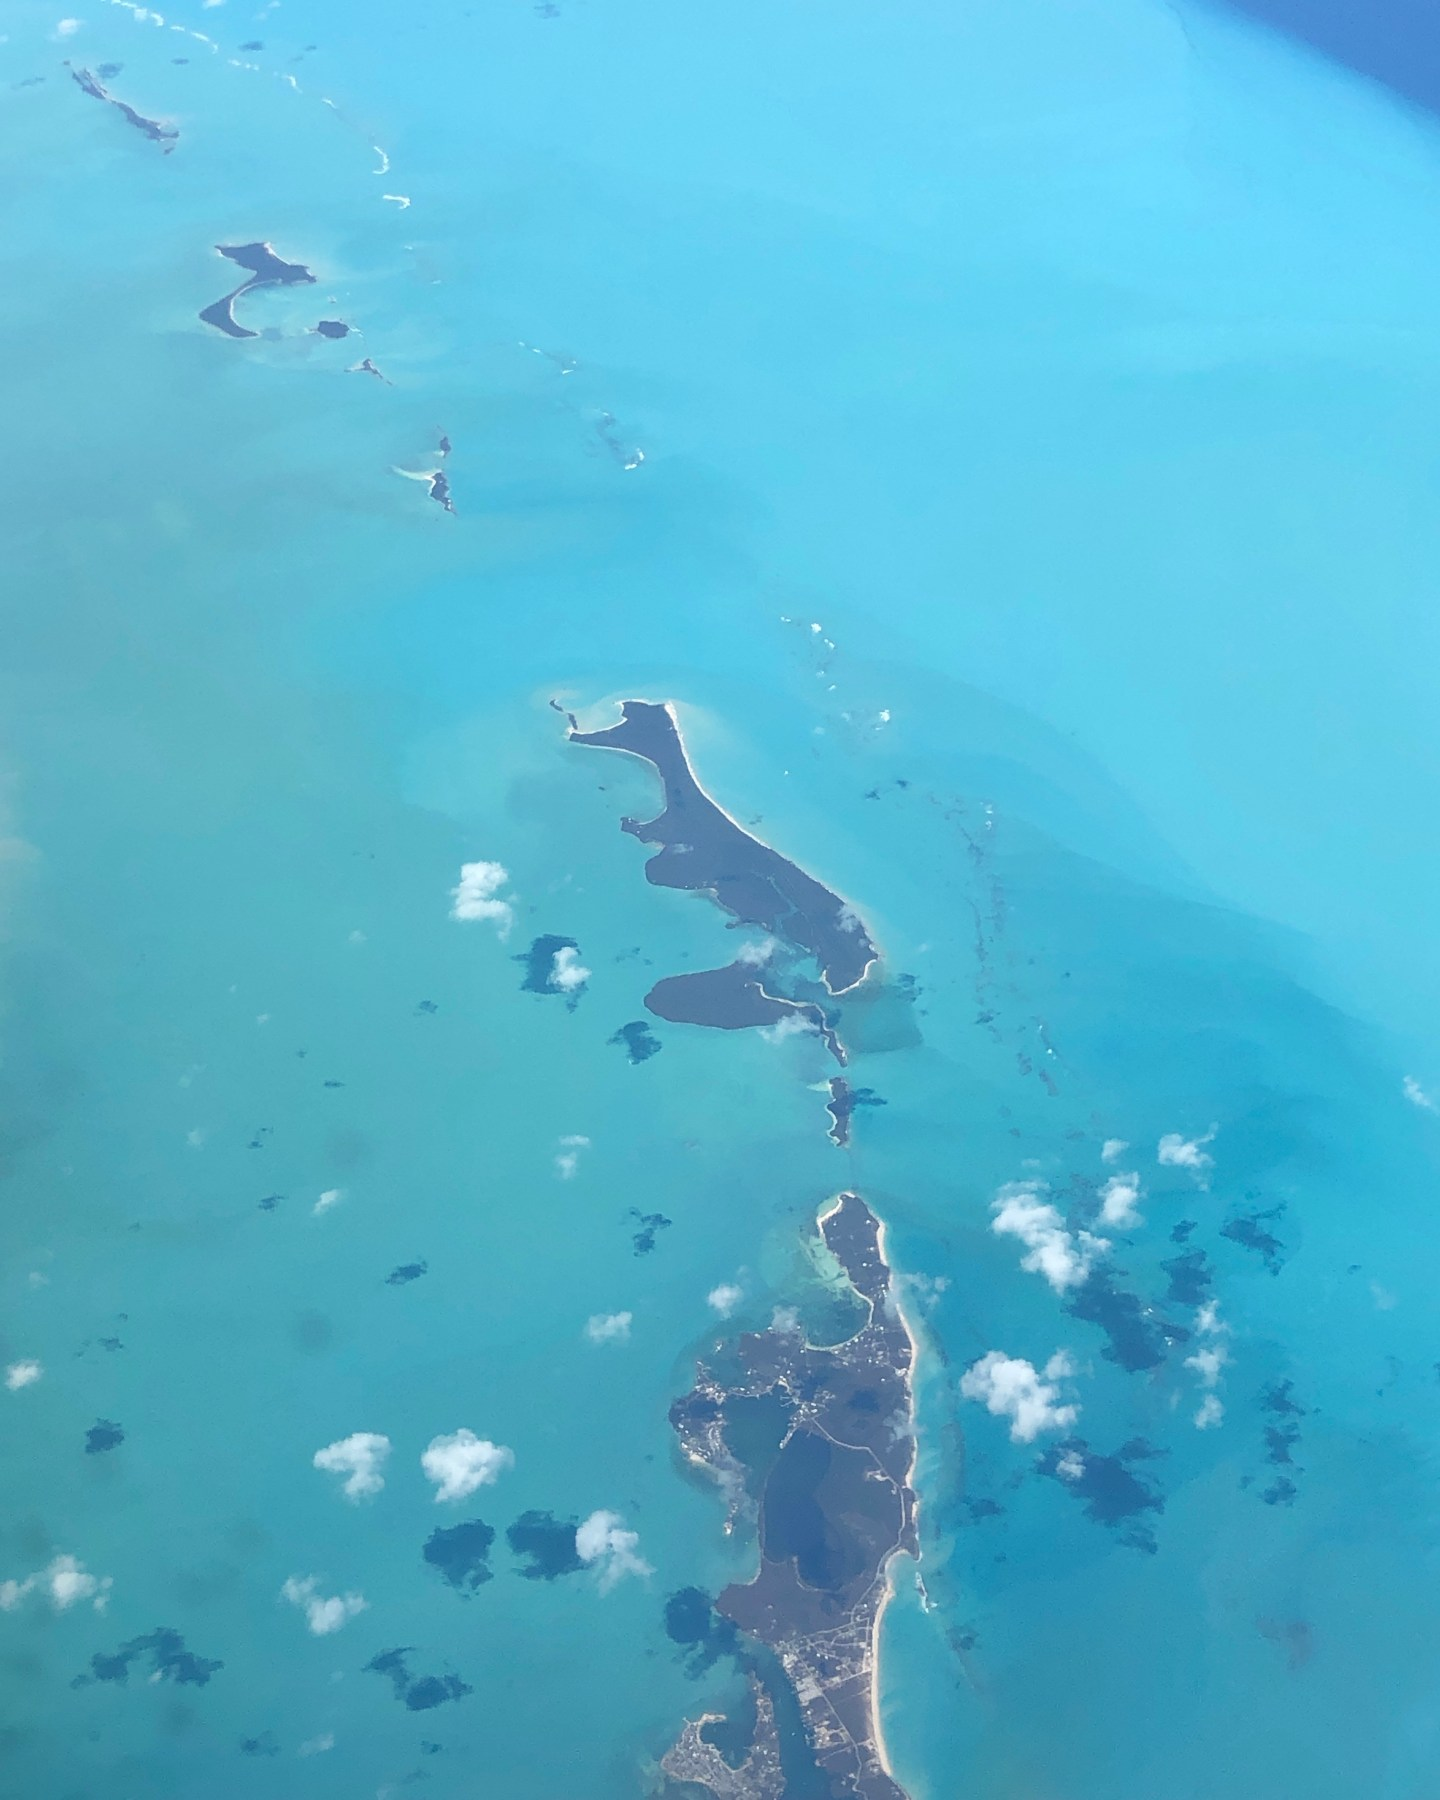 The Bahamas from above